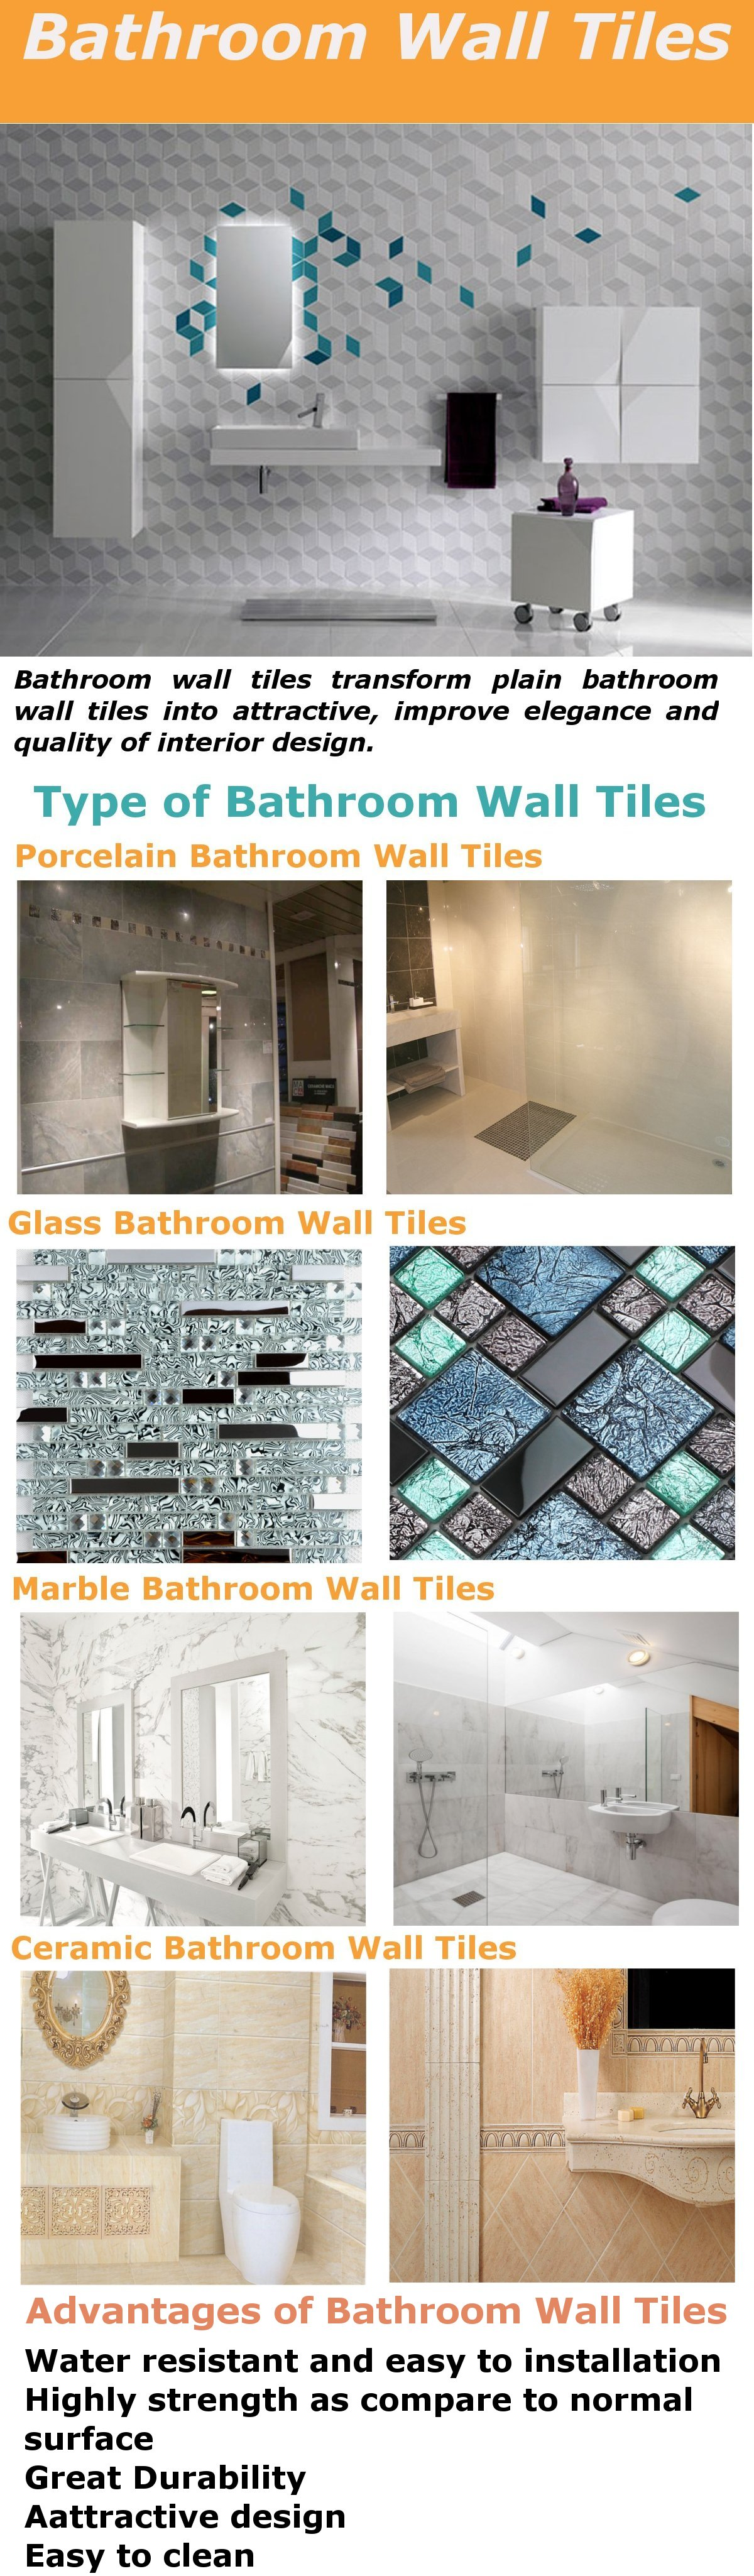 Visit here for bathroom wall tiles manufacturers companies lisings ...